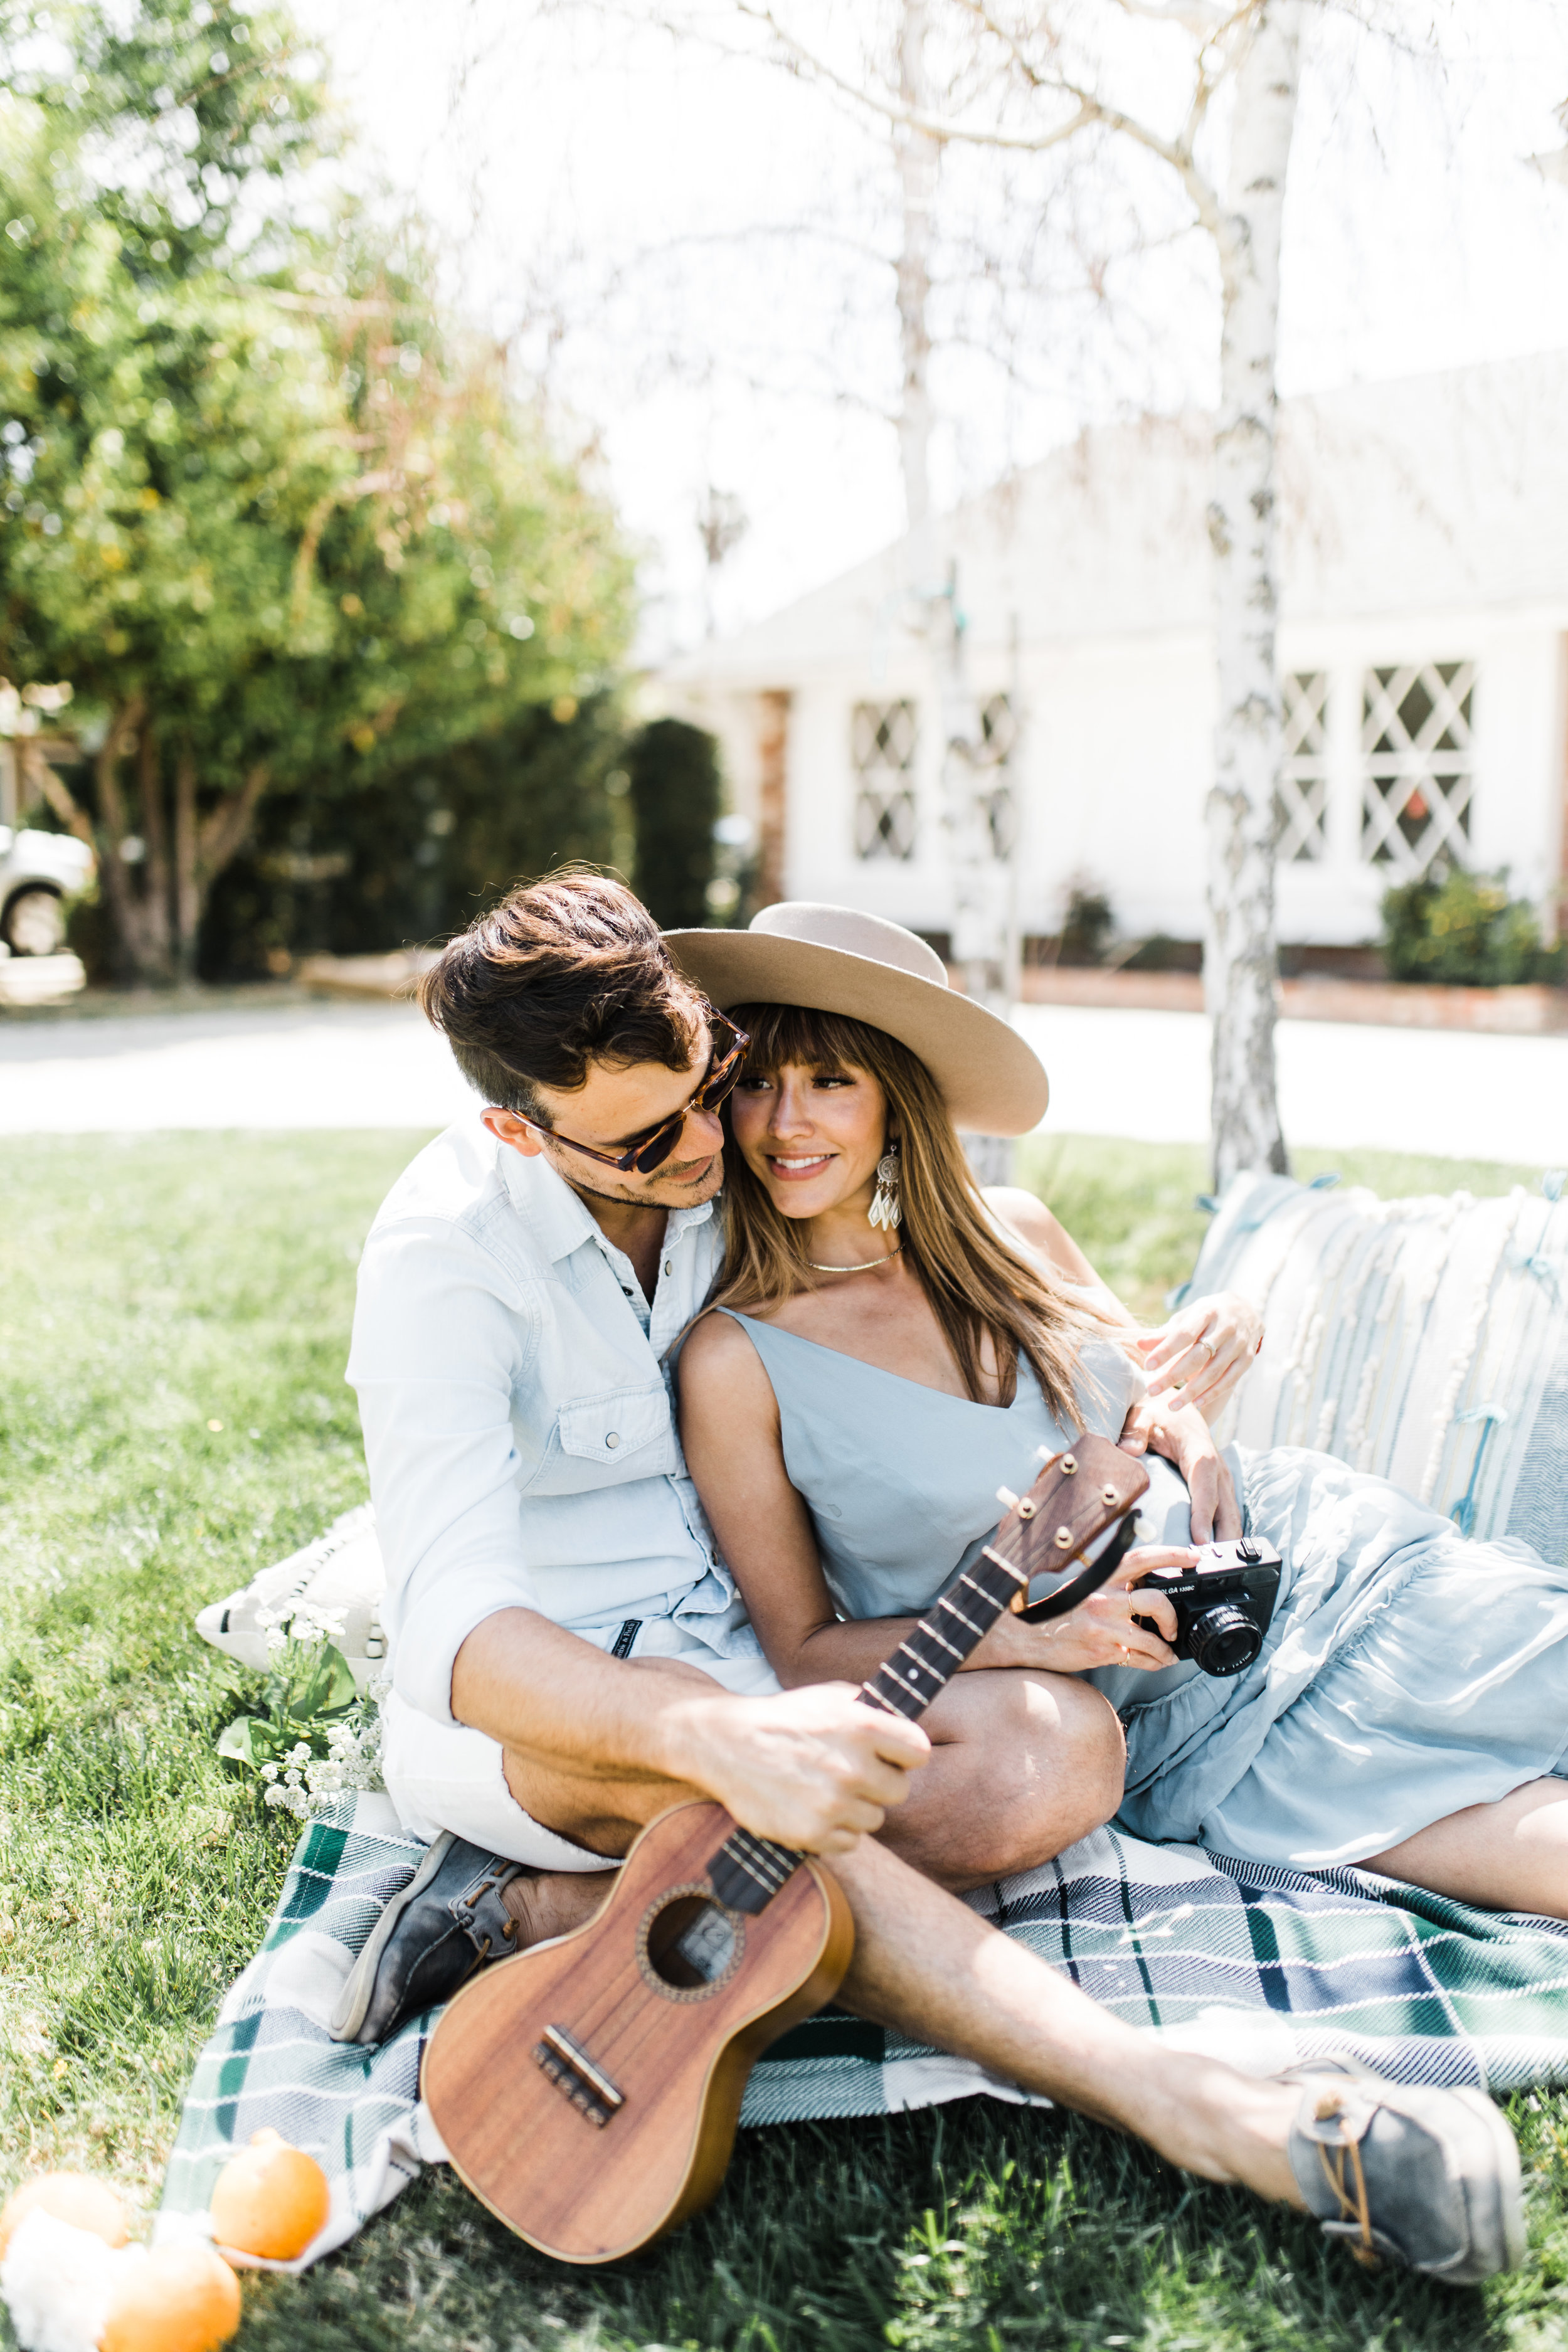 Fernanda&Mariano-Spring-Inspired-Los-Angeles-Engagement-Shoot-Clarisse-Rae-Photo-Video-Southern-California-Wedding-Photographer_30